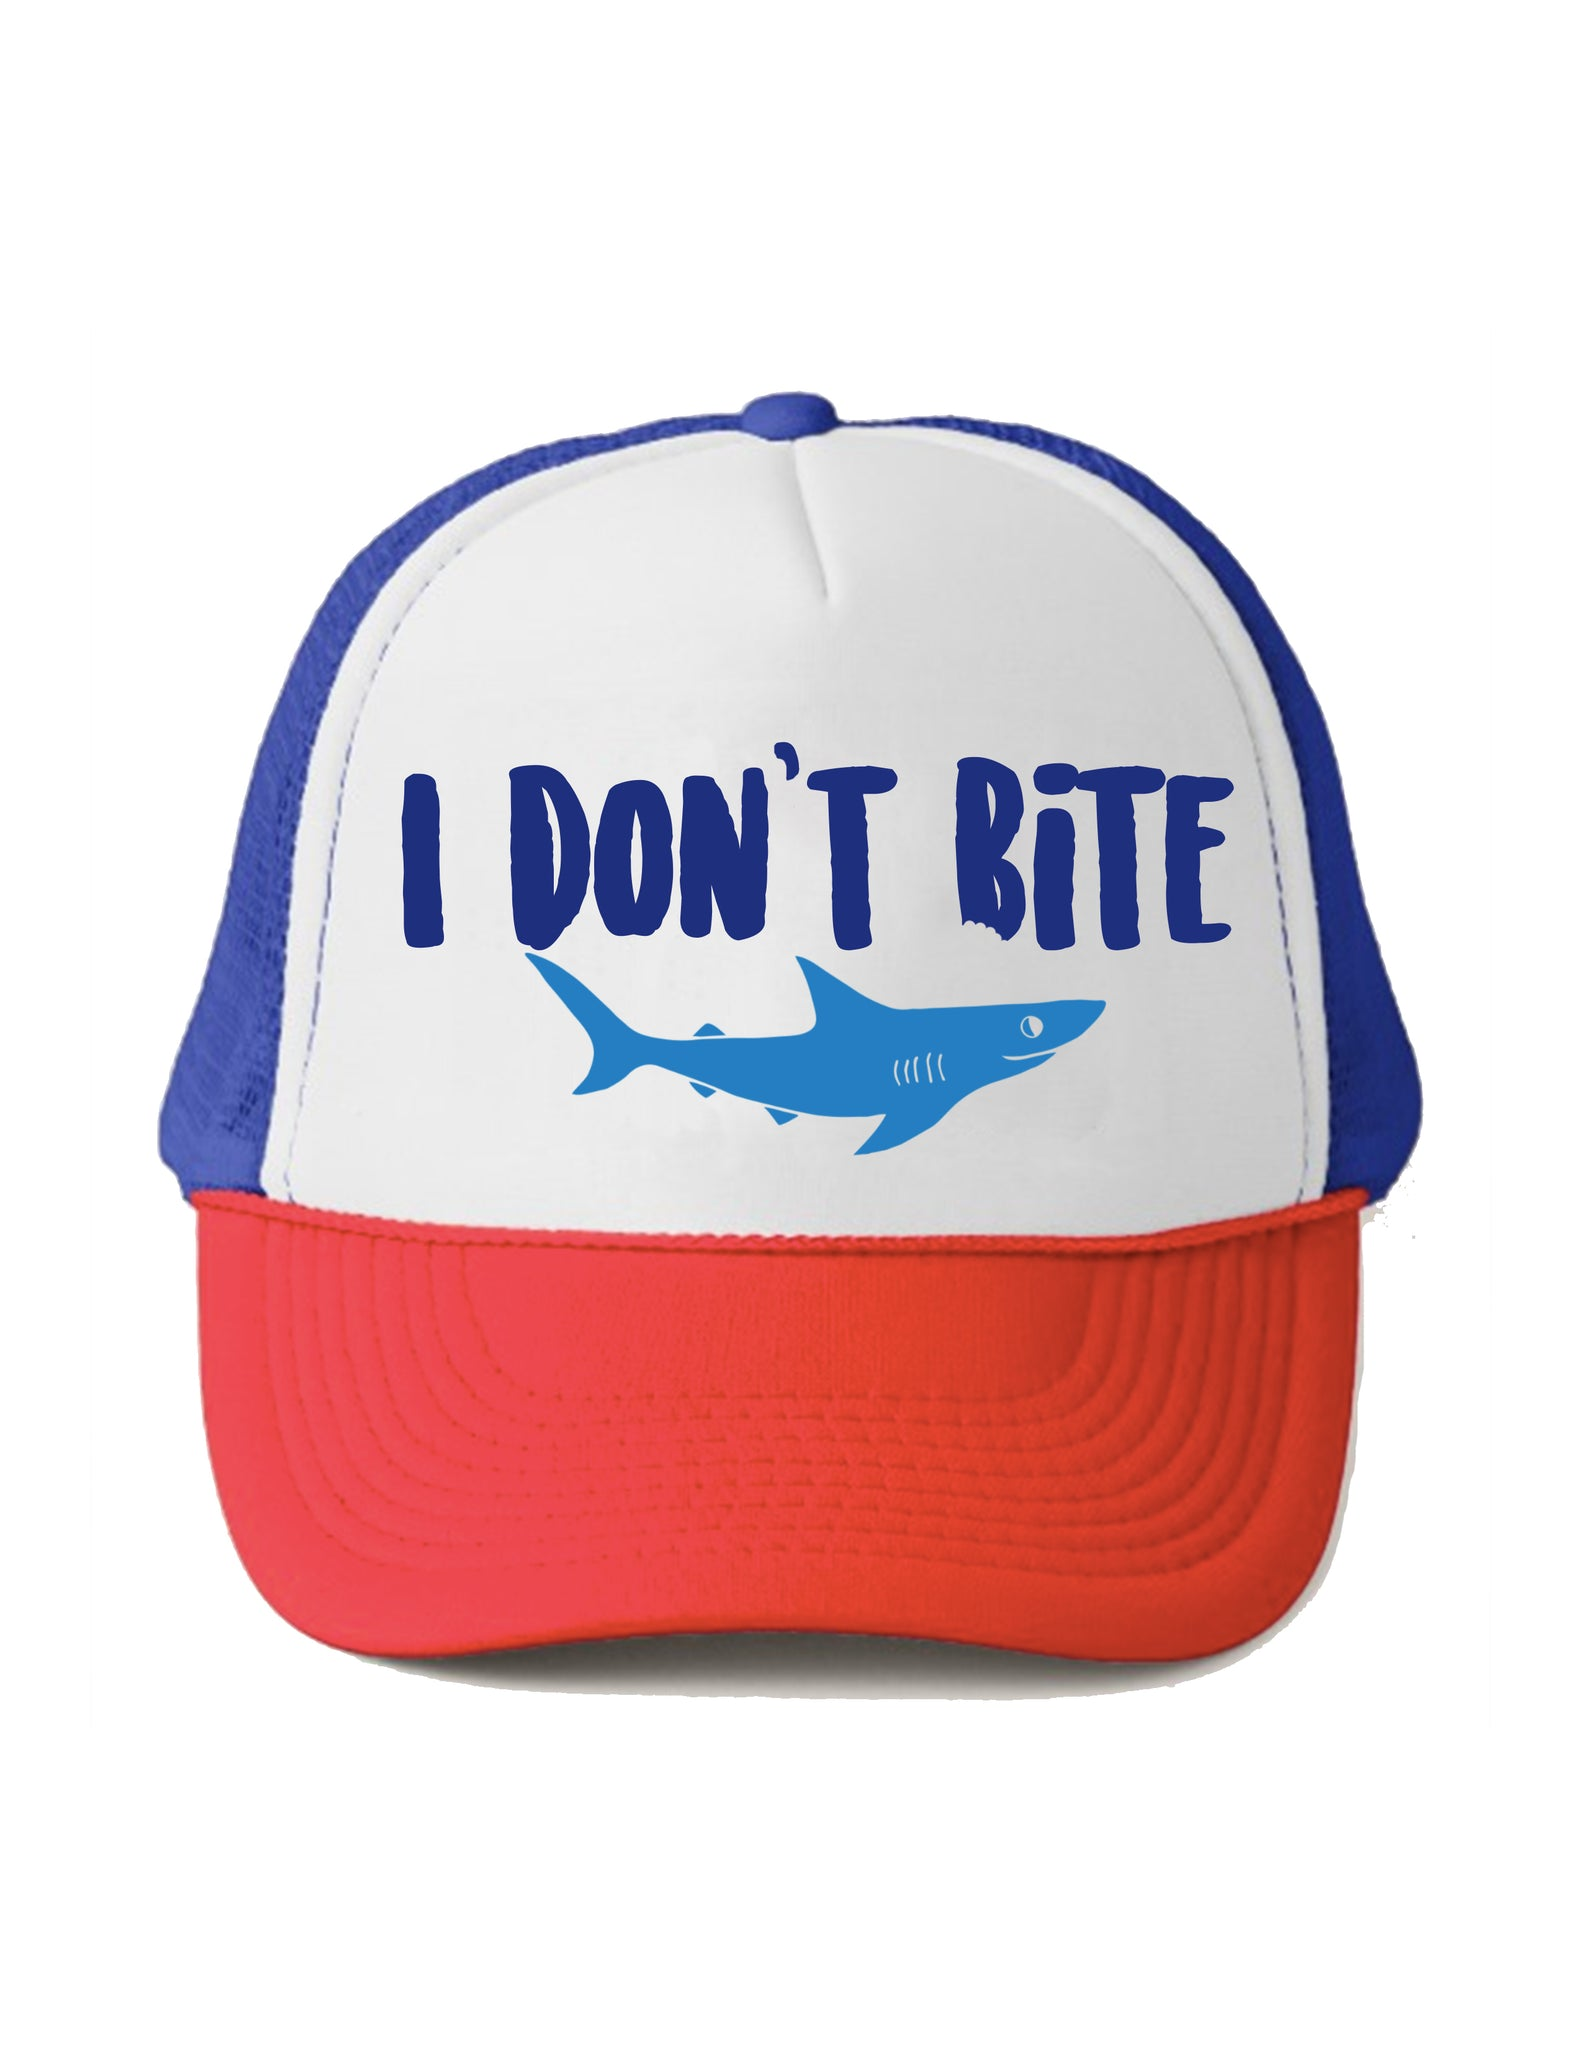 Shark I don't Bite Trucker Hat Beau and Belle Littles Red White and Blue